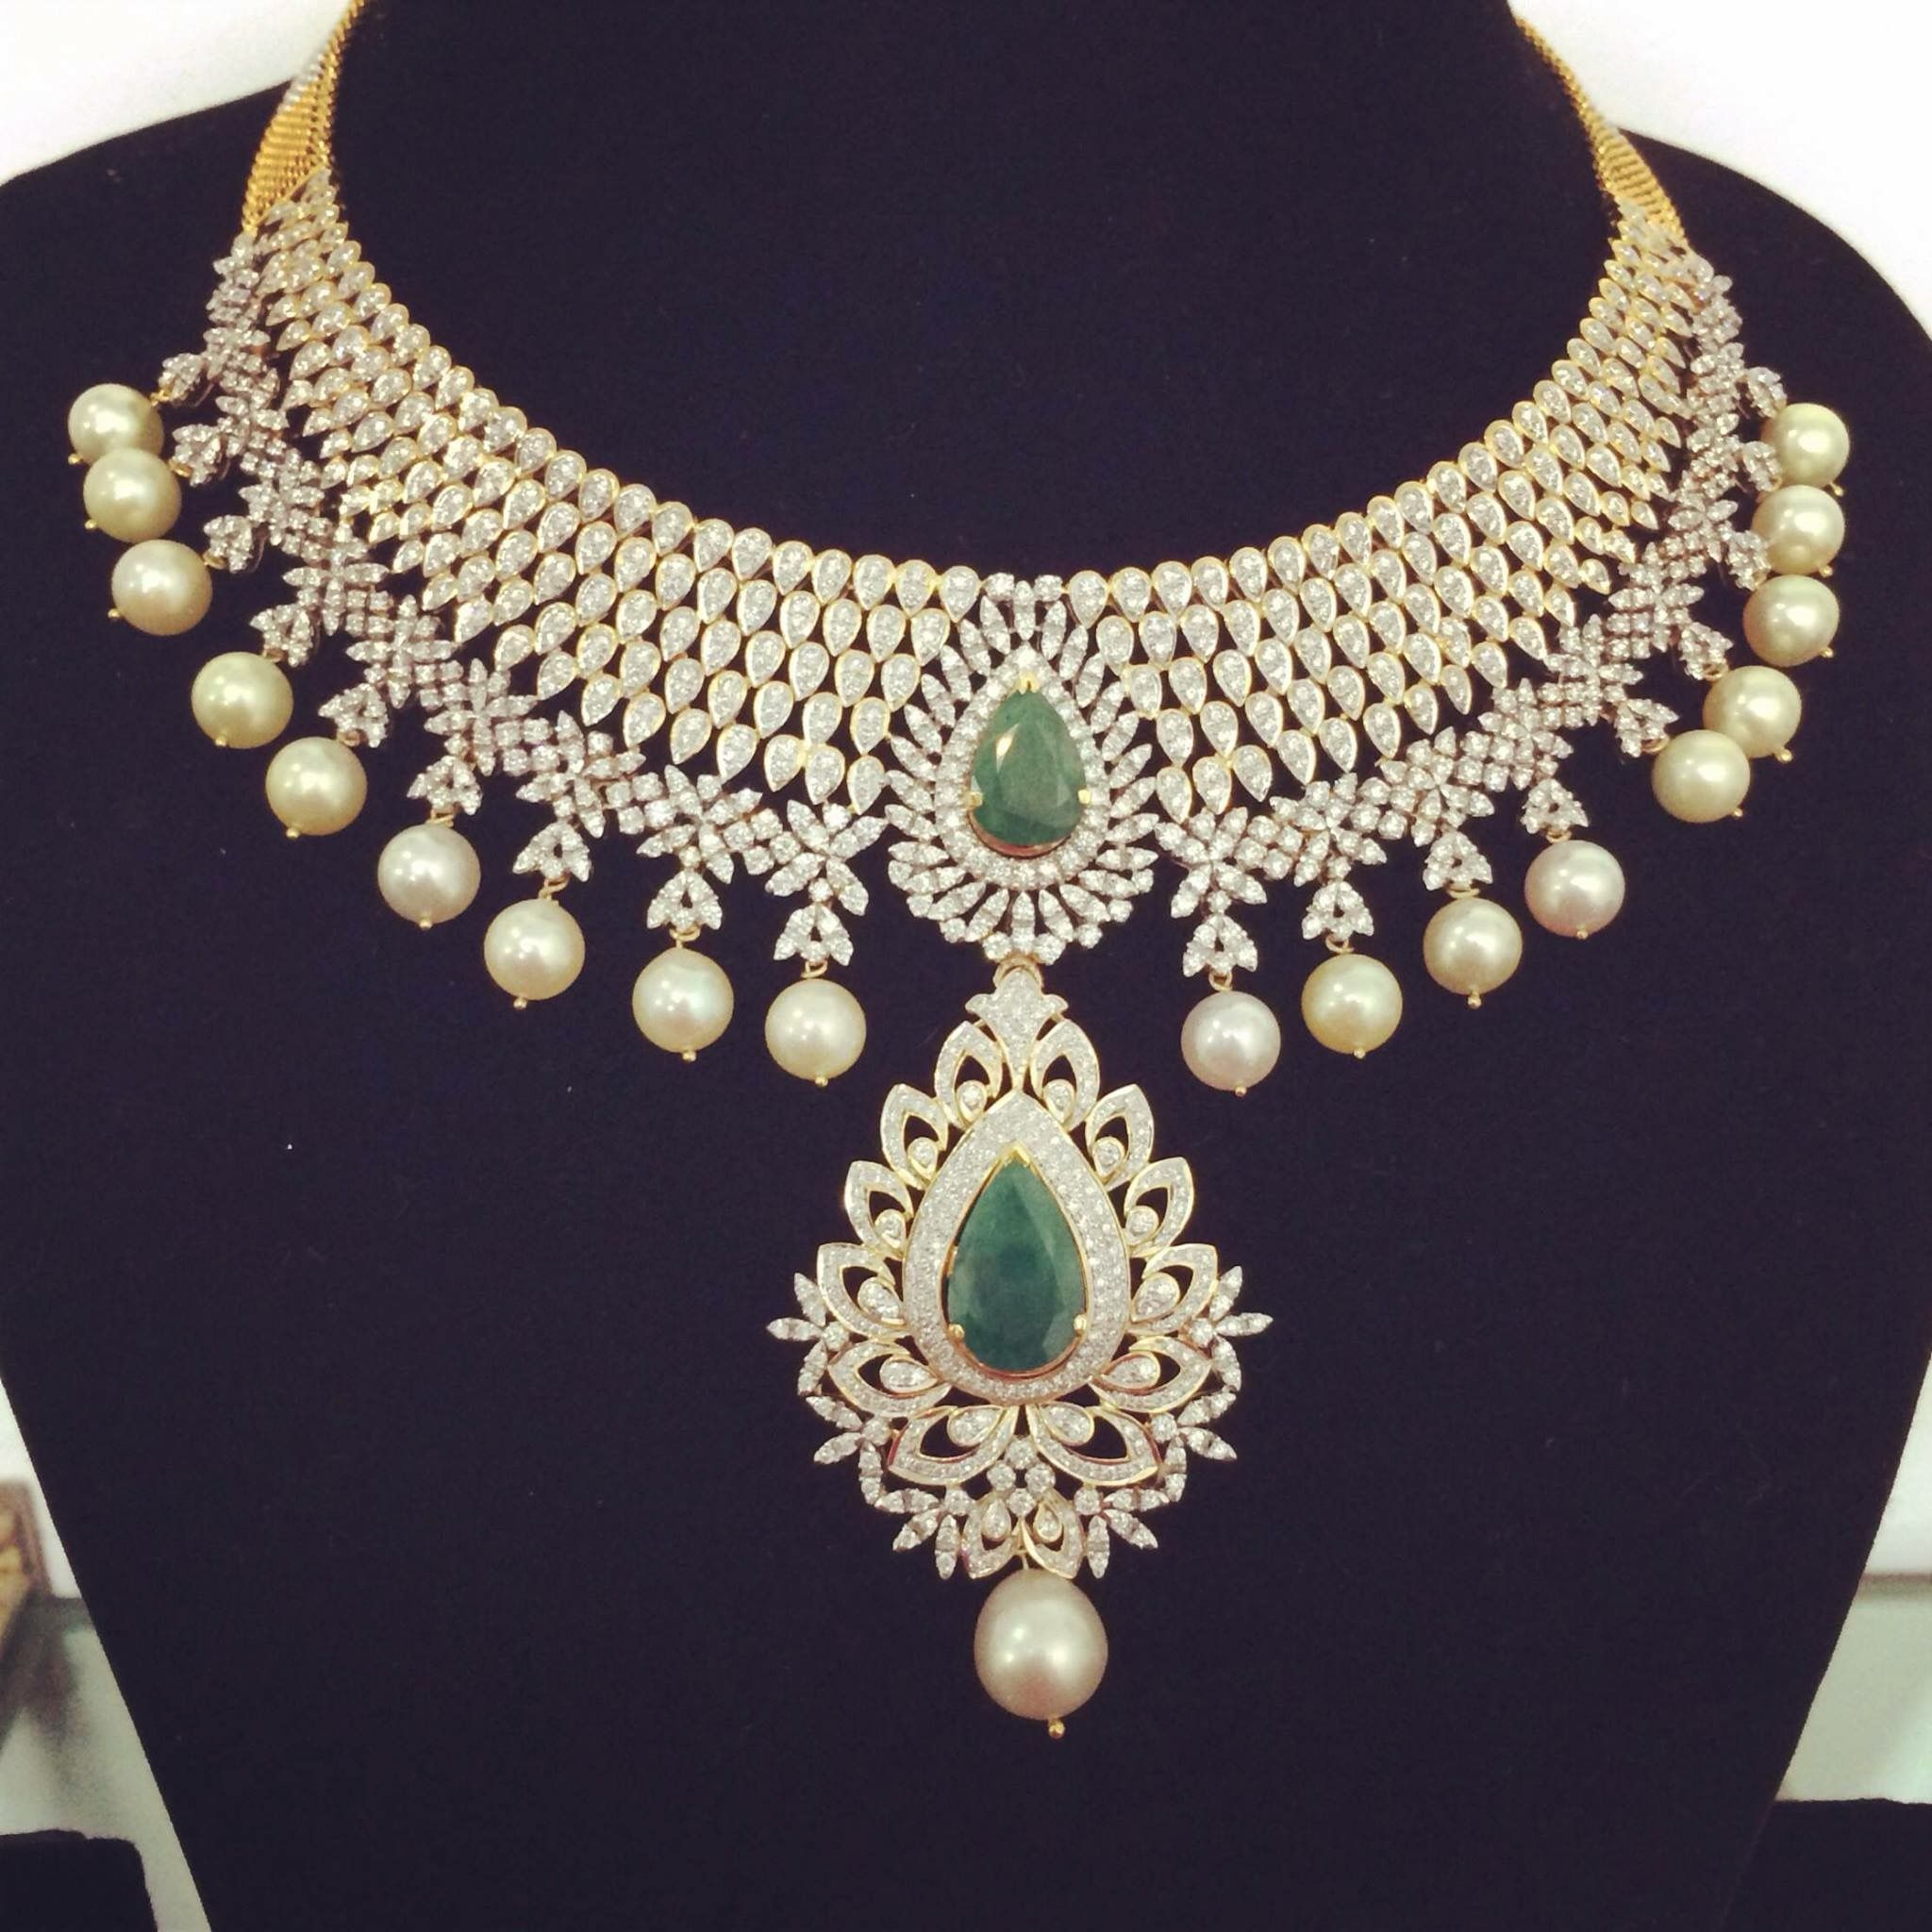 quality suitable imp premium fashion stylish exclusively high available necklaces products jewellery n jewelry